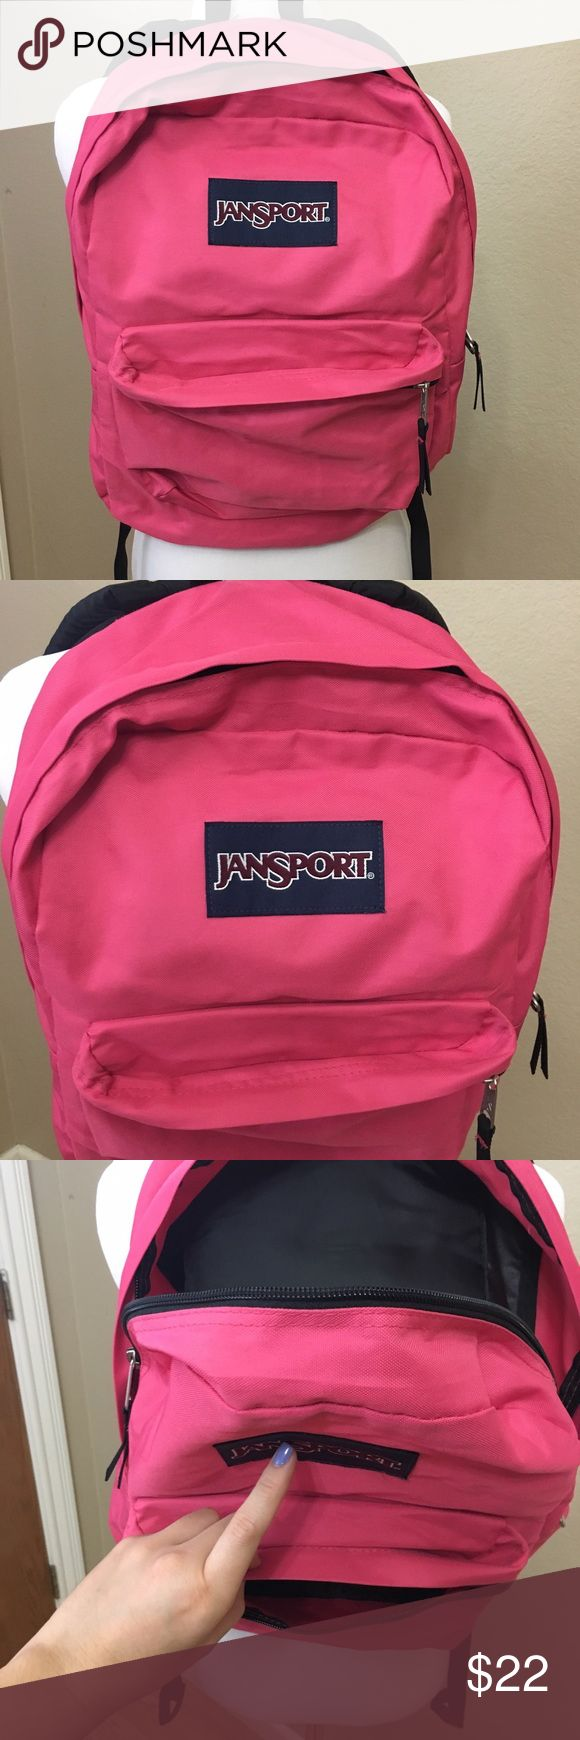 Pink Jansport backpack This really cute Jansport backpack is in amazing condition! The color is like a pinkish coral color (see images) Their is only one pen mark on the inside as shown in the images. Other than that it's in great condition, looks new. Also selling a brand new Jansport backpack in my closet. Jansport Bags Backpacks